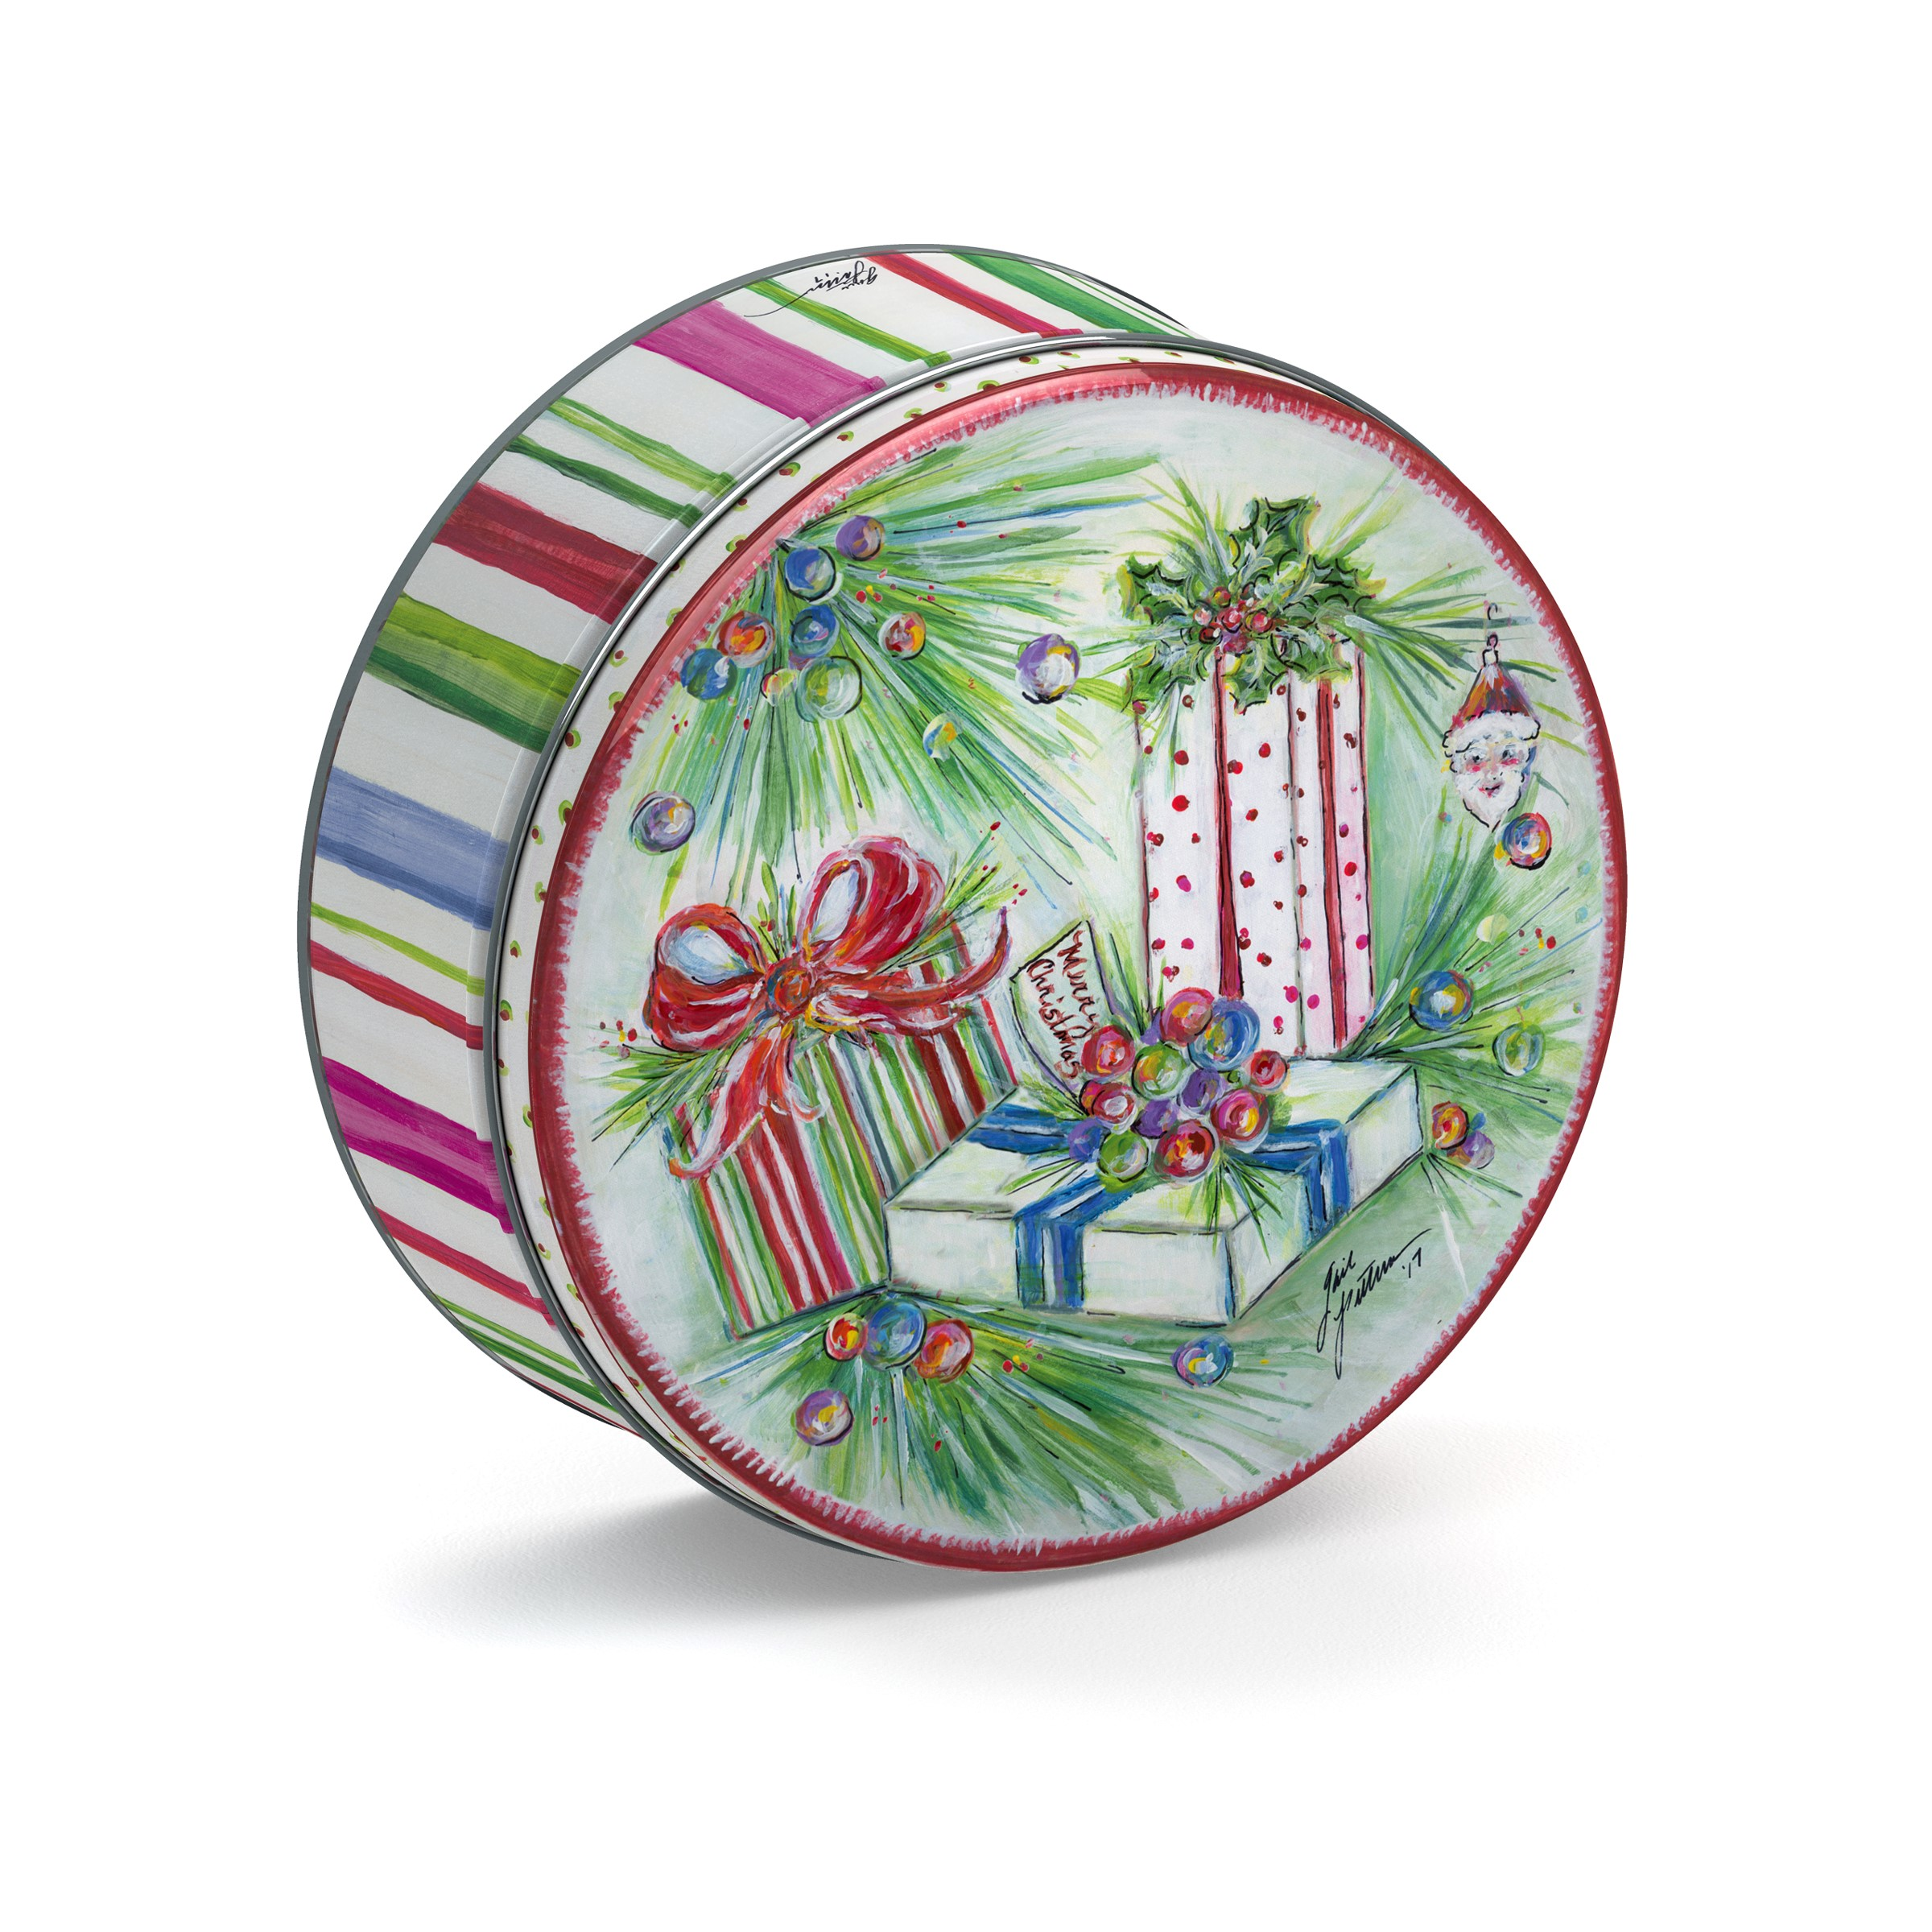 16 oz. Gail Pittman Holiday Tin